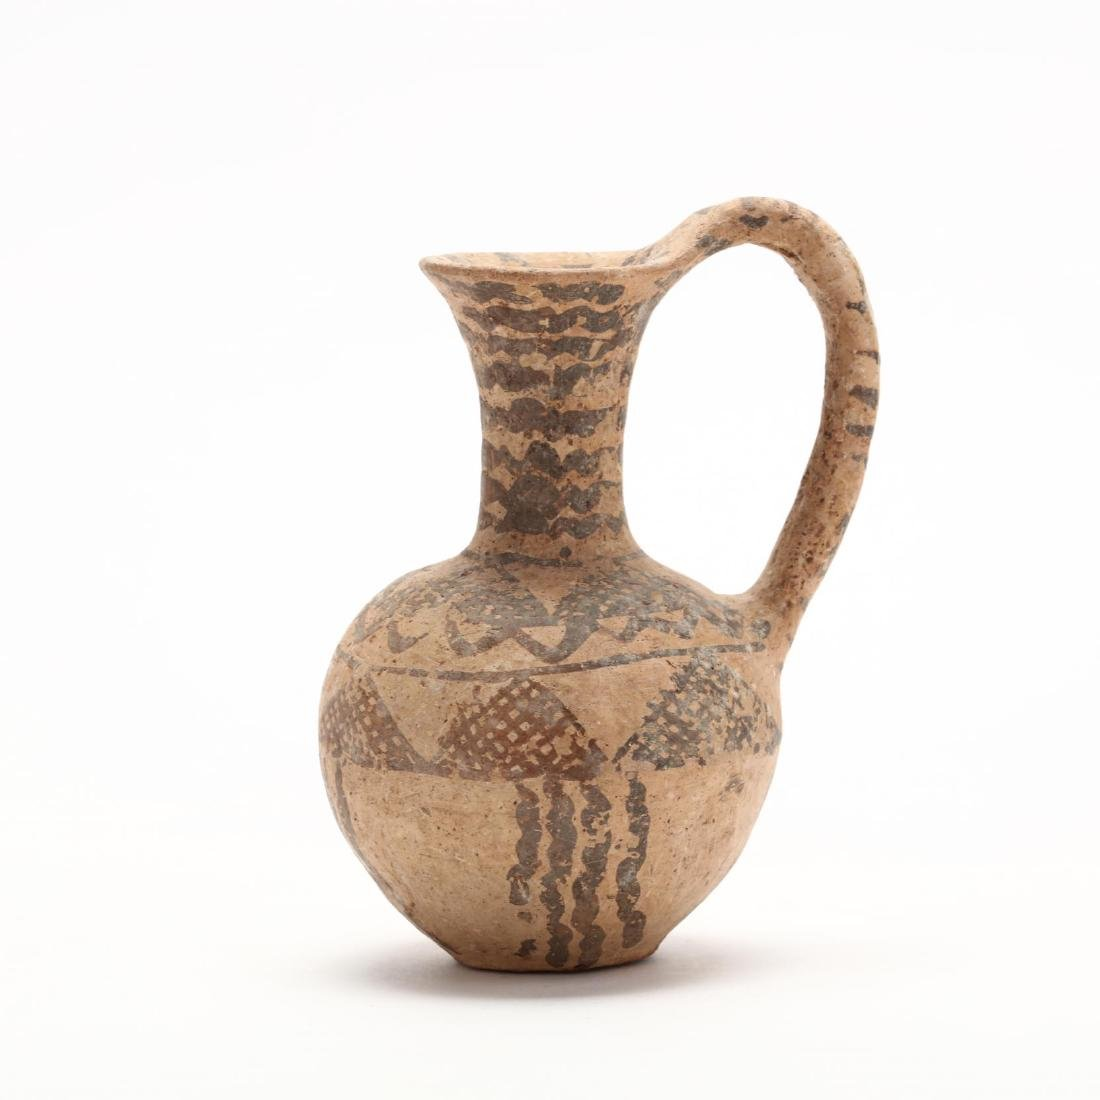 Cypriot Middle Bronze Age Bichrome Jug - 3